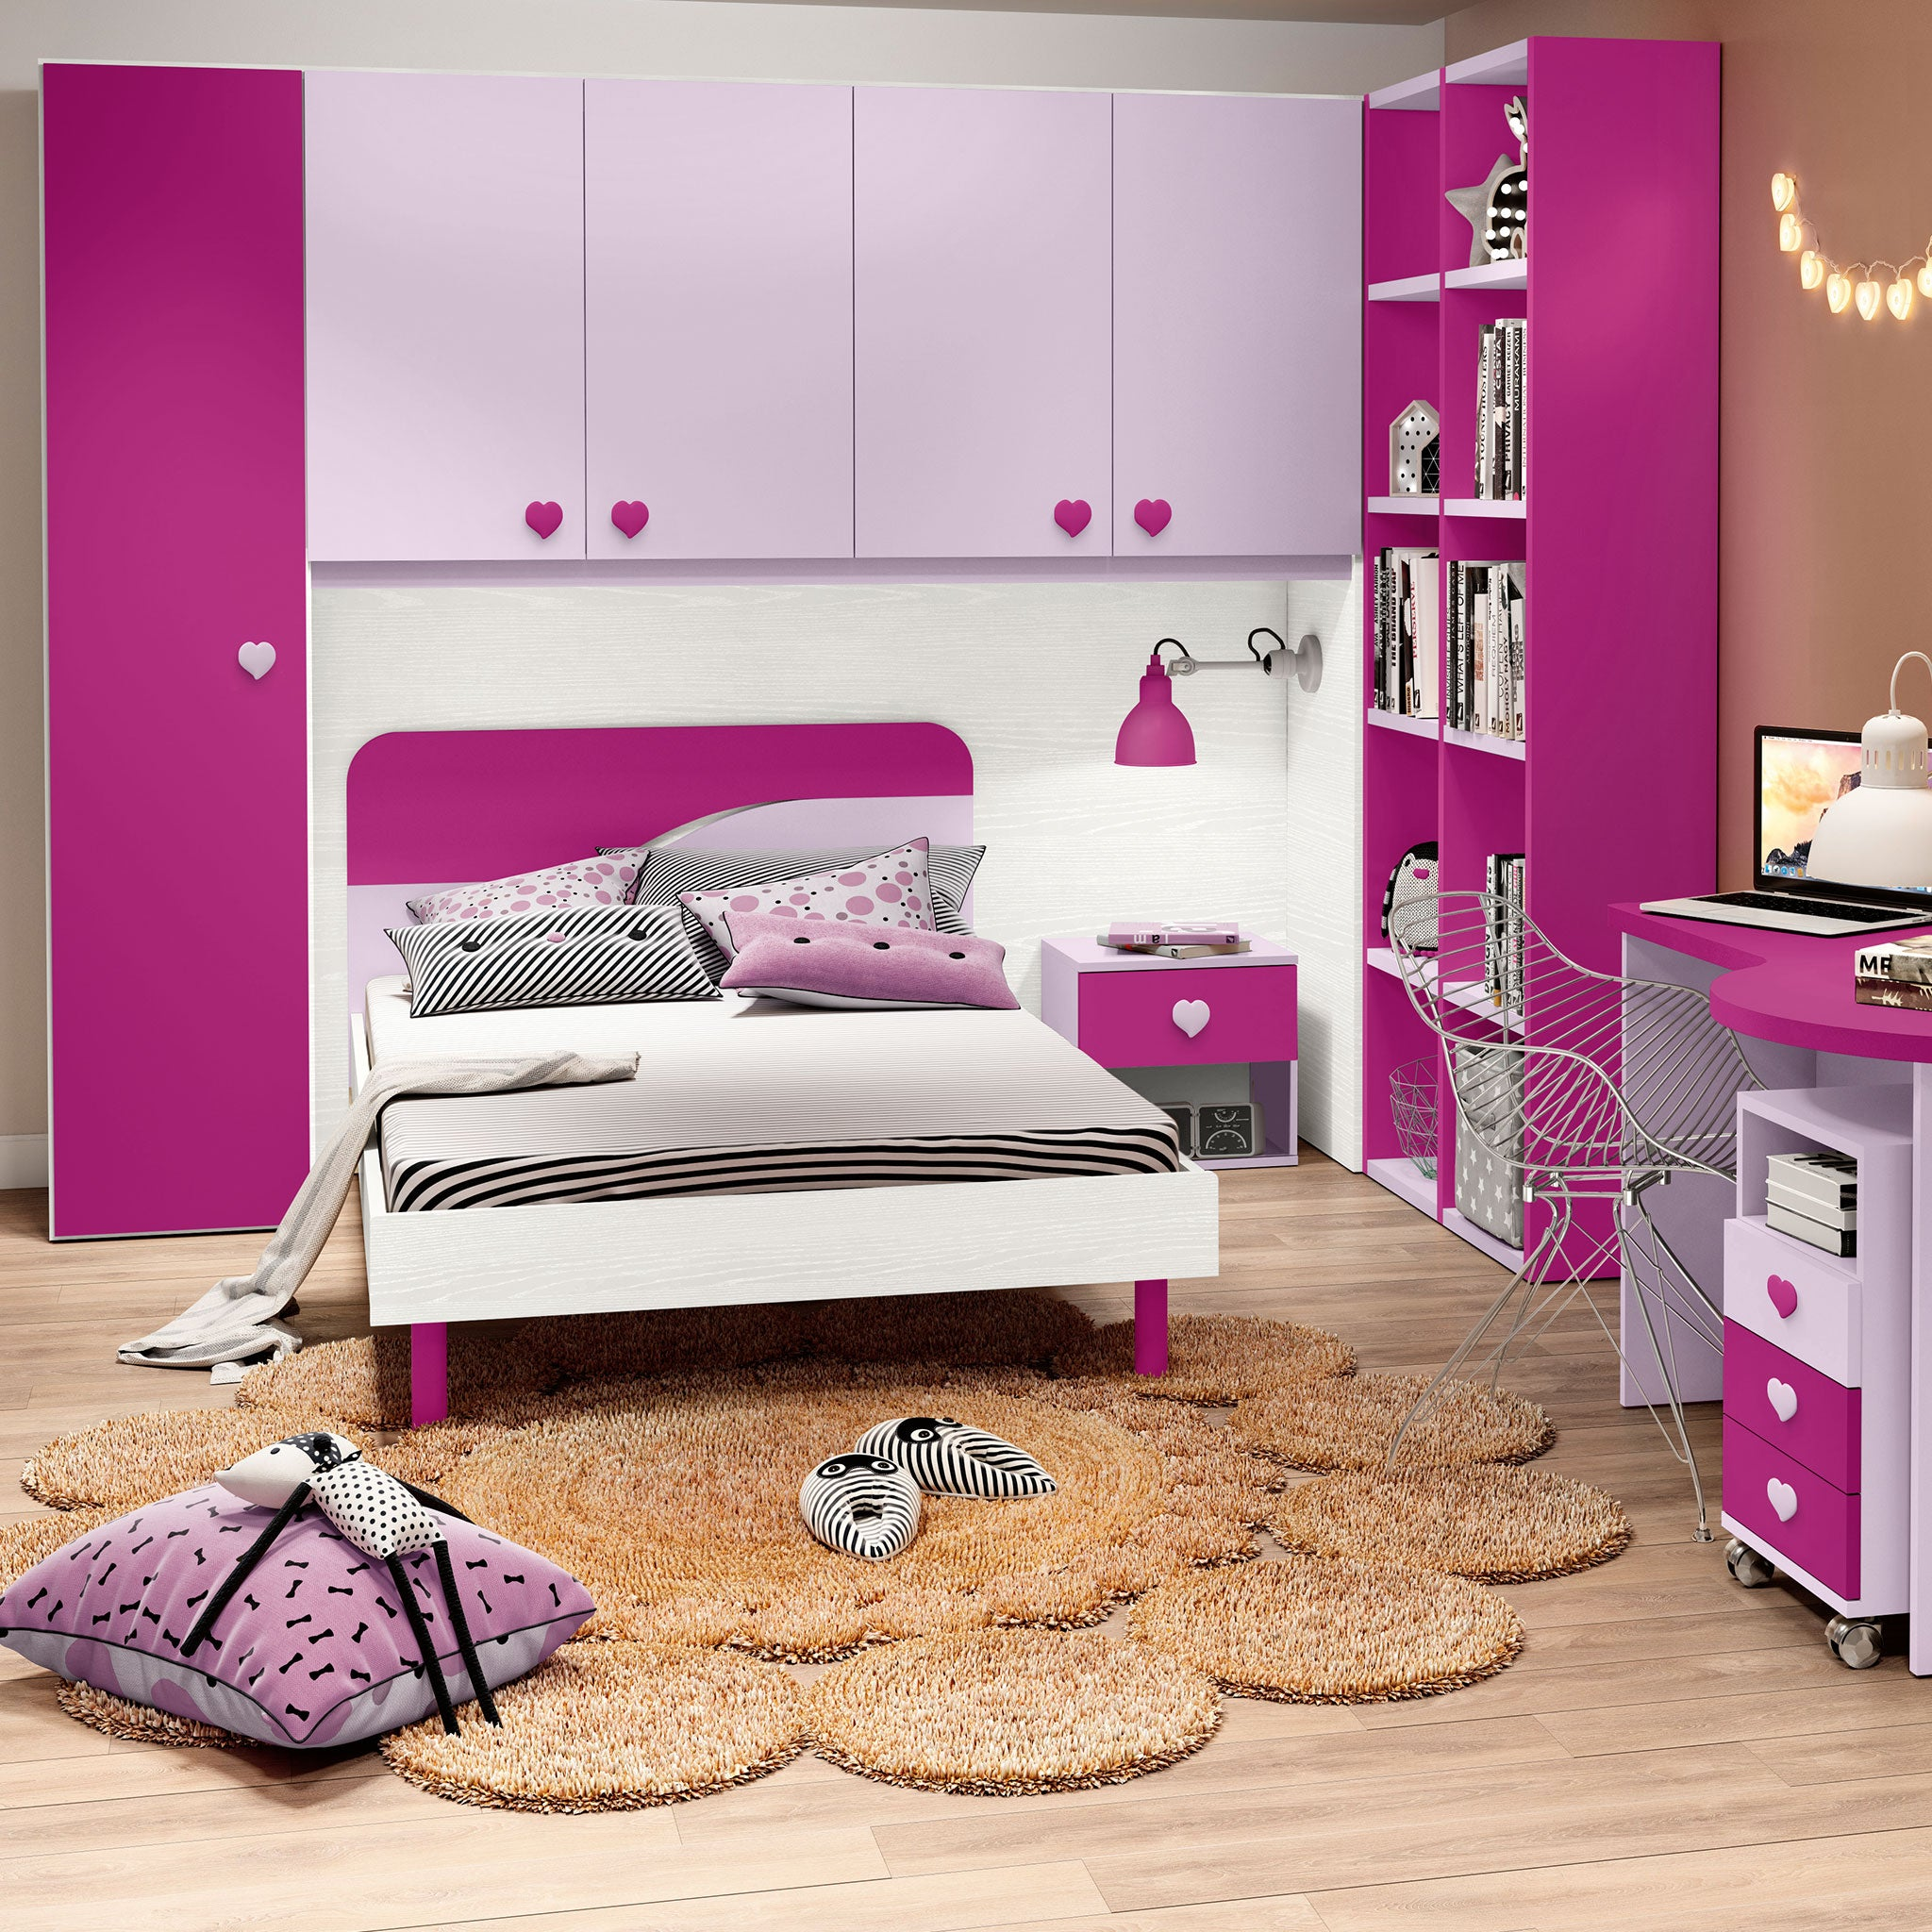 EVAN FUCSIA Set mobilier camera copii